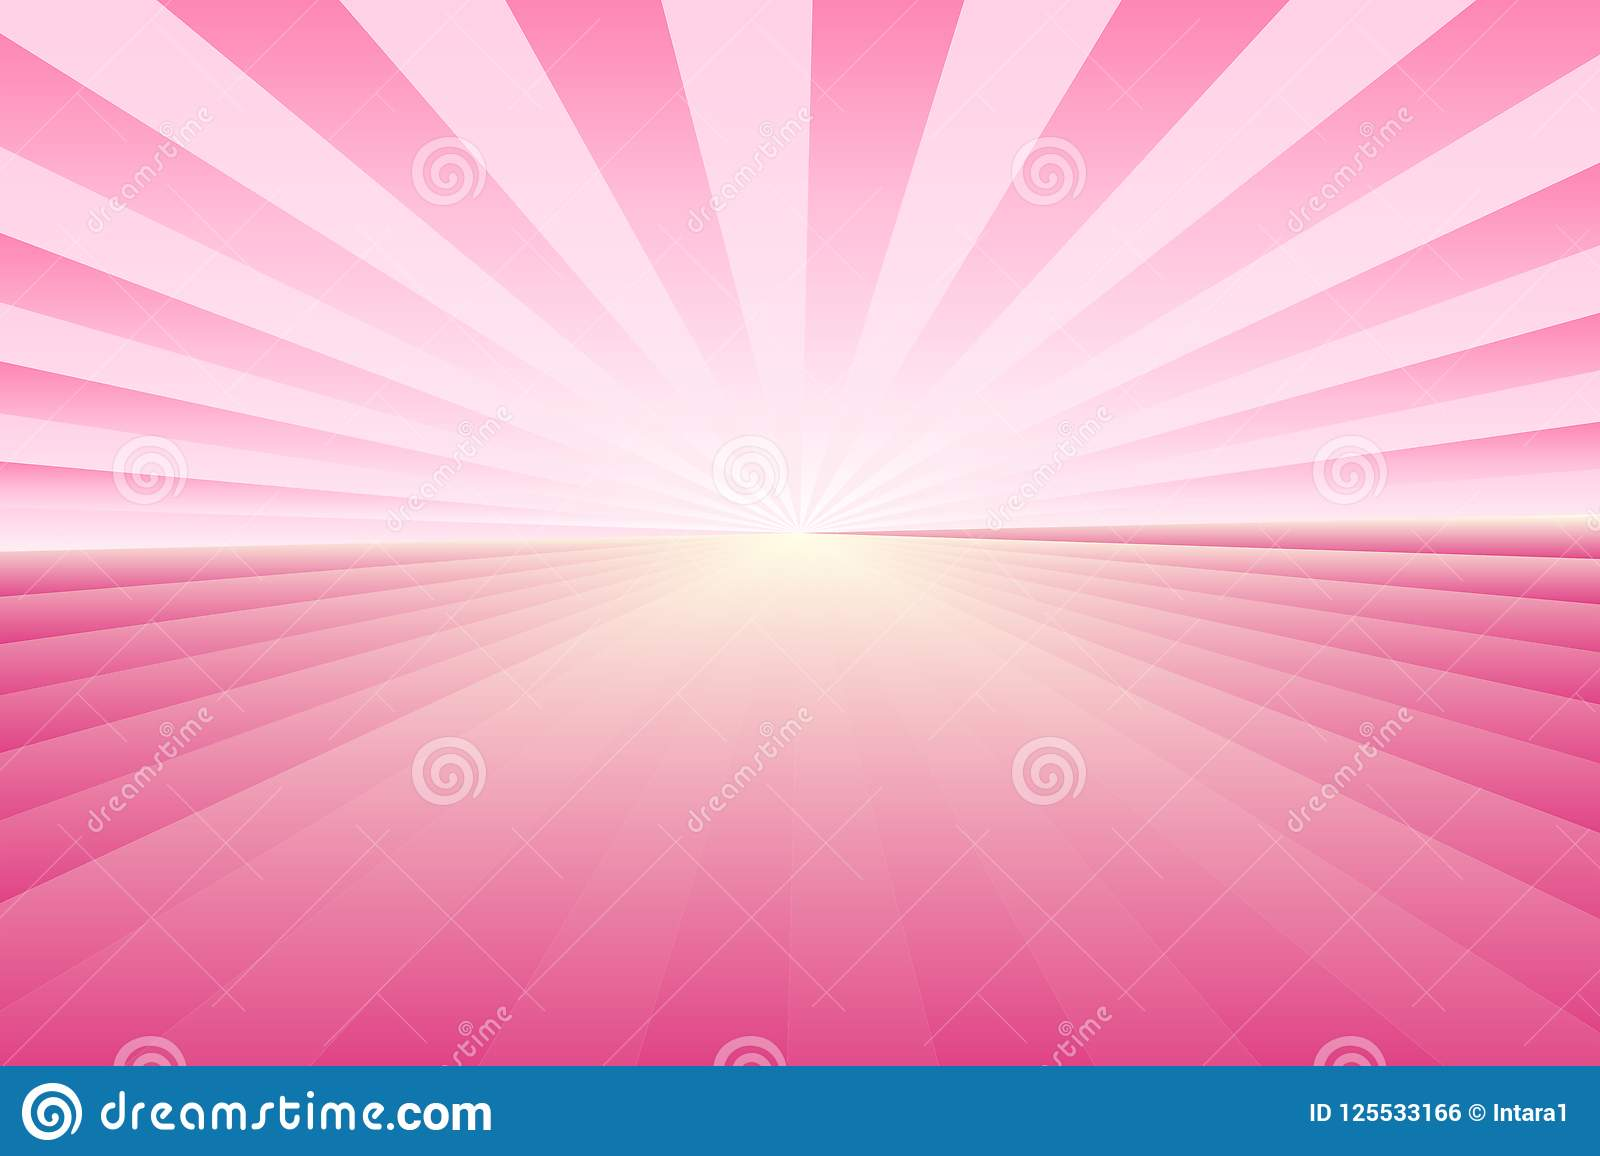 Abstract Sunburst Pattern Gradient Pink Ray Colors With Center